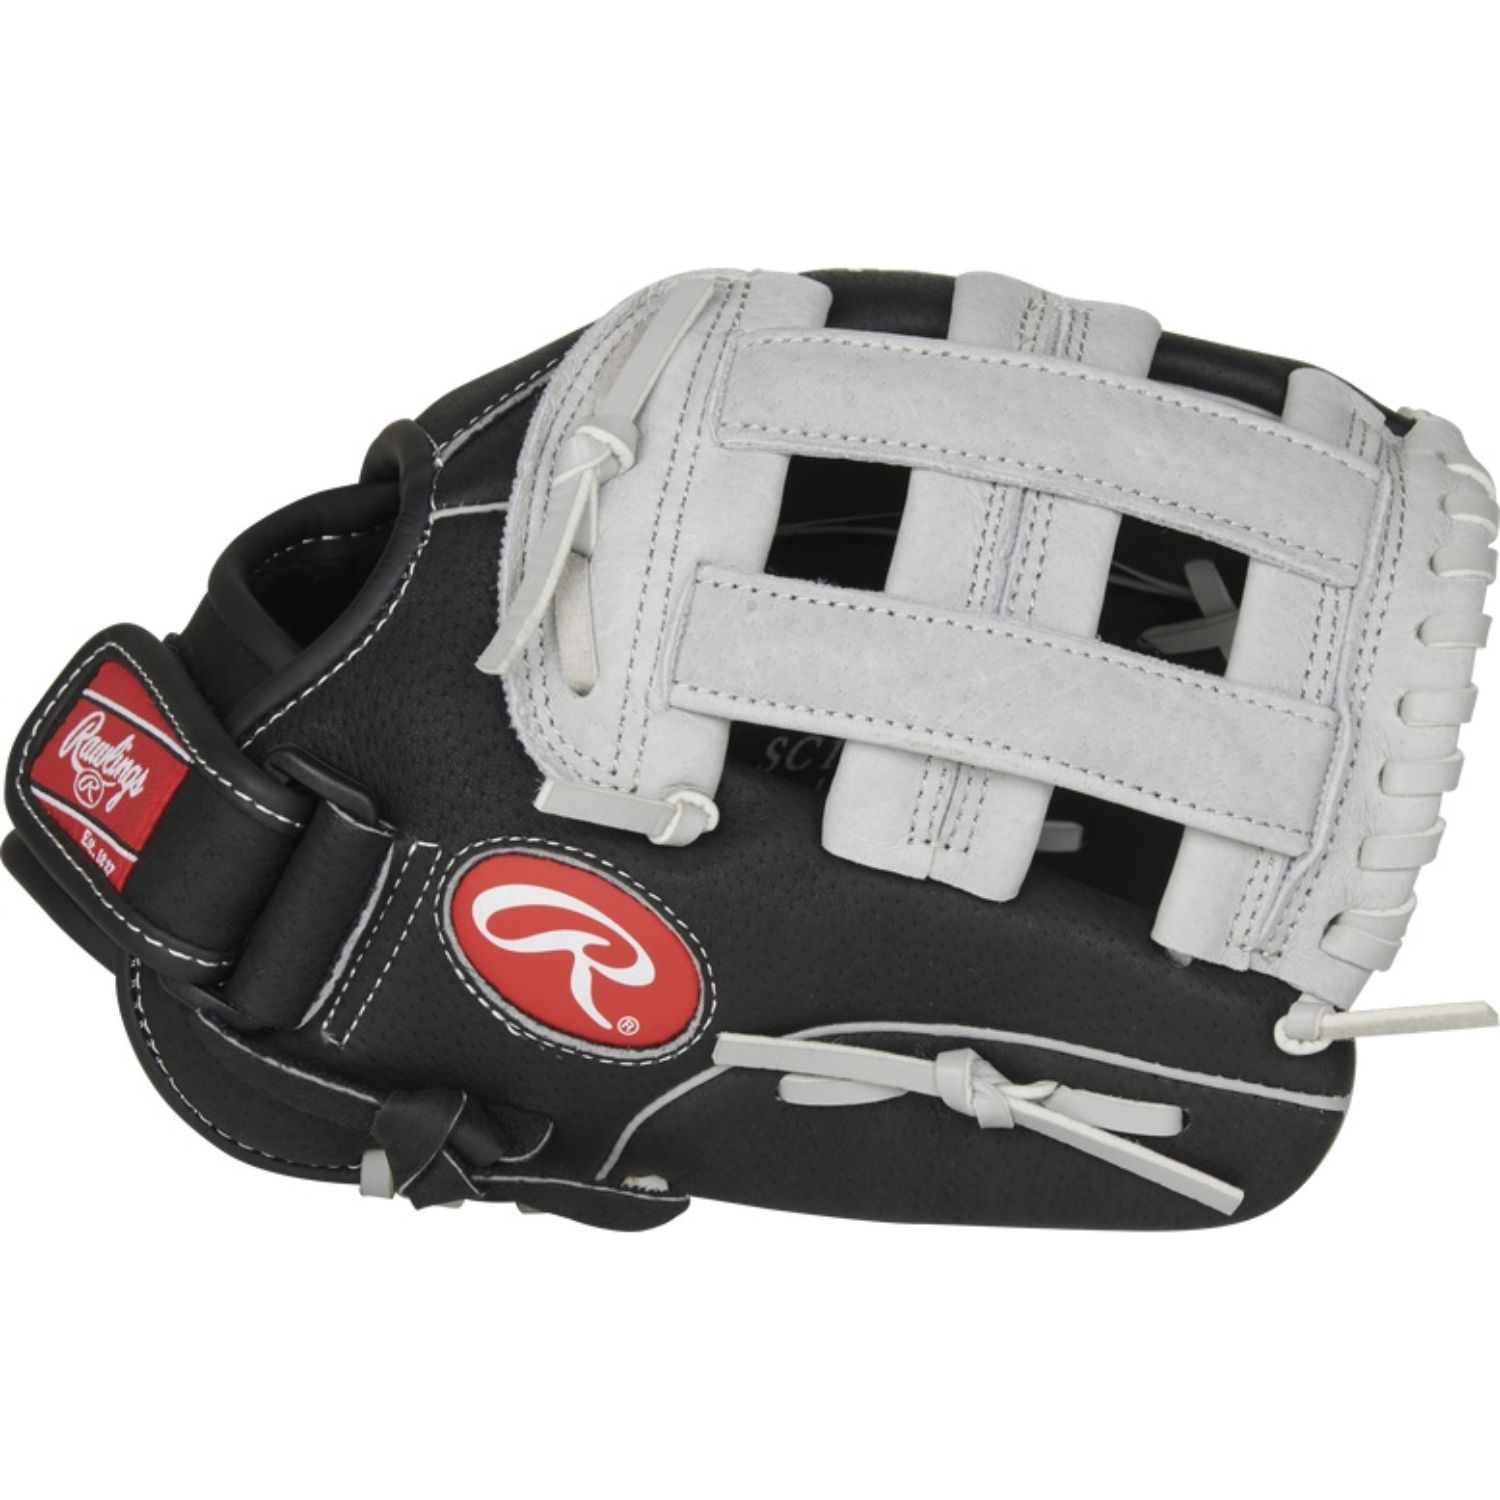 Rawlings 11 Inch Sure Catch Youth Infield Outfield Glove RH